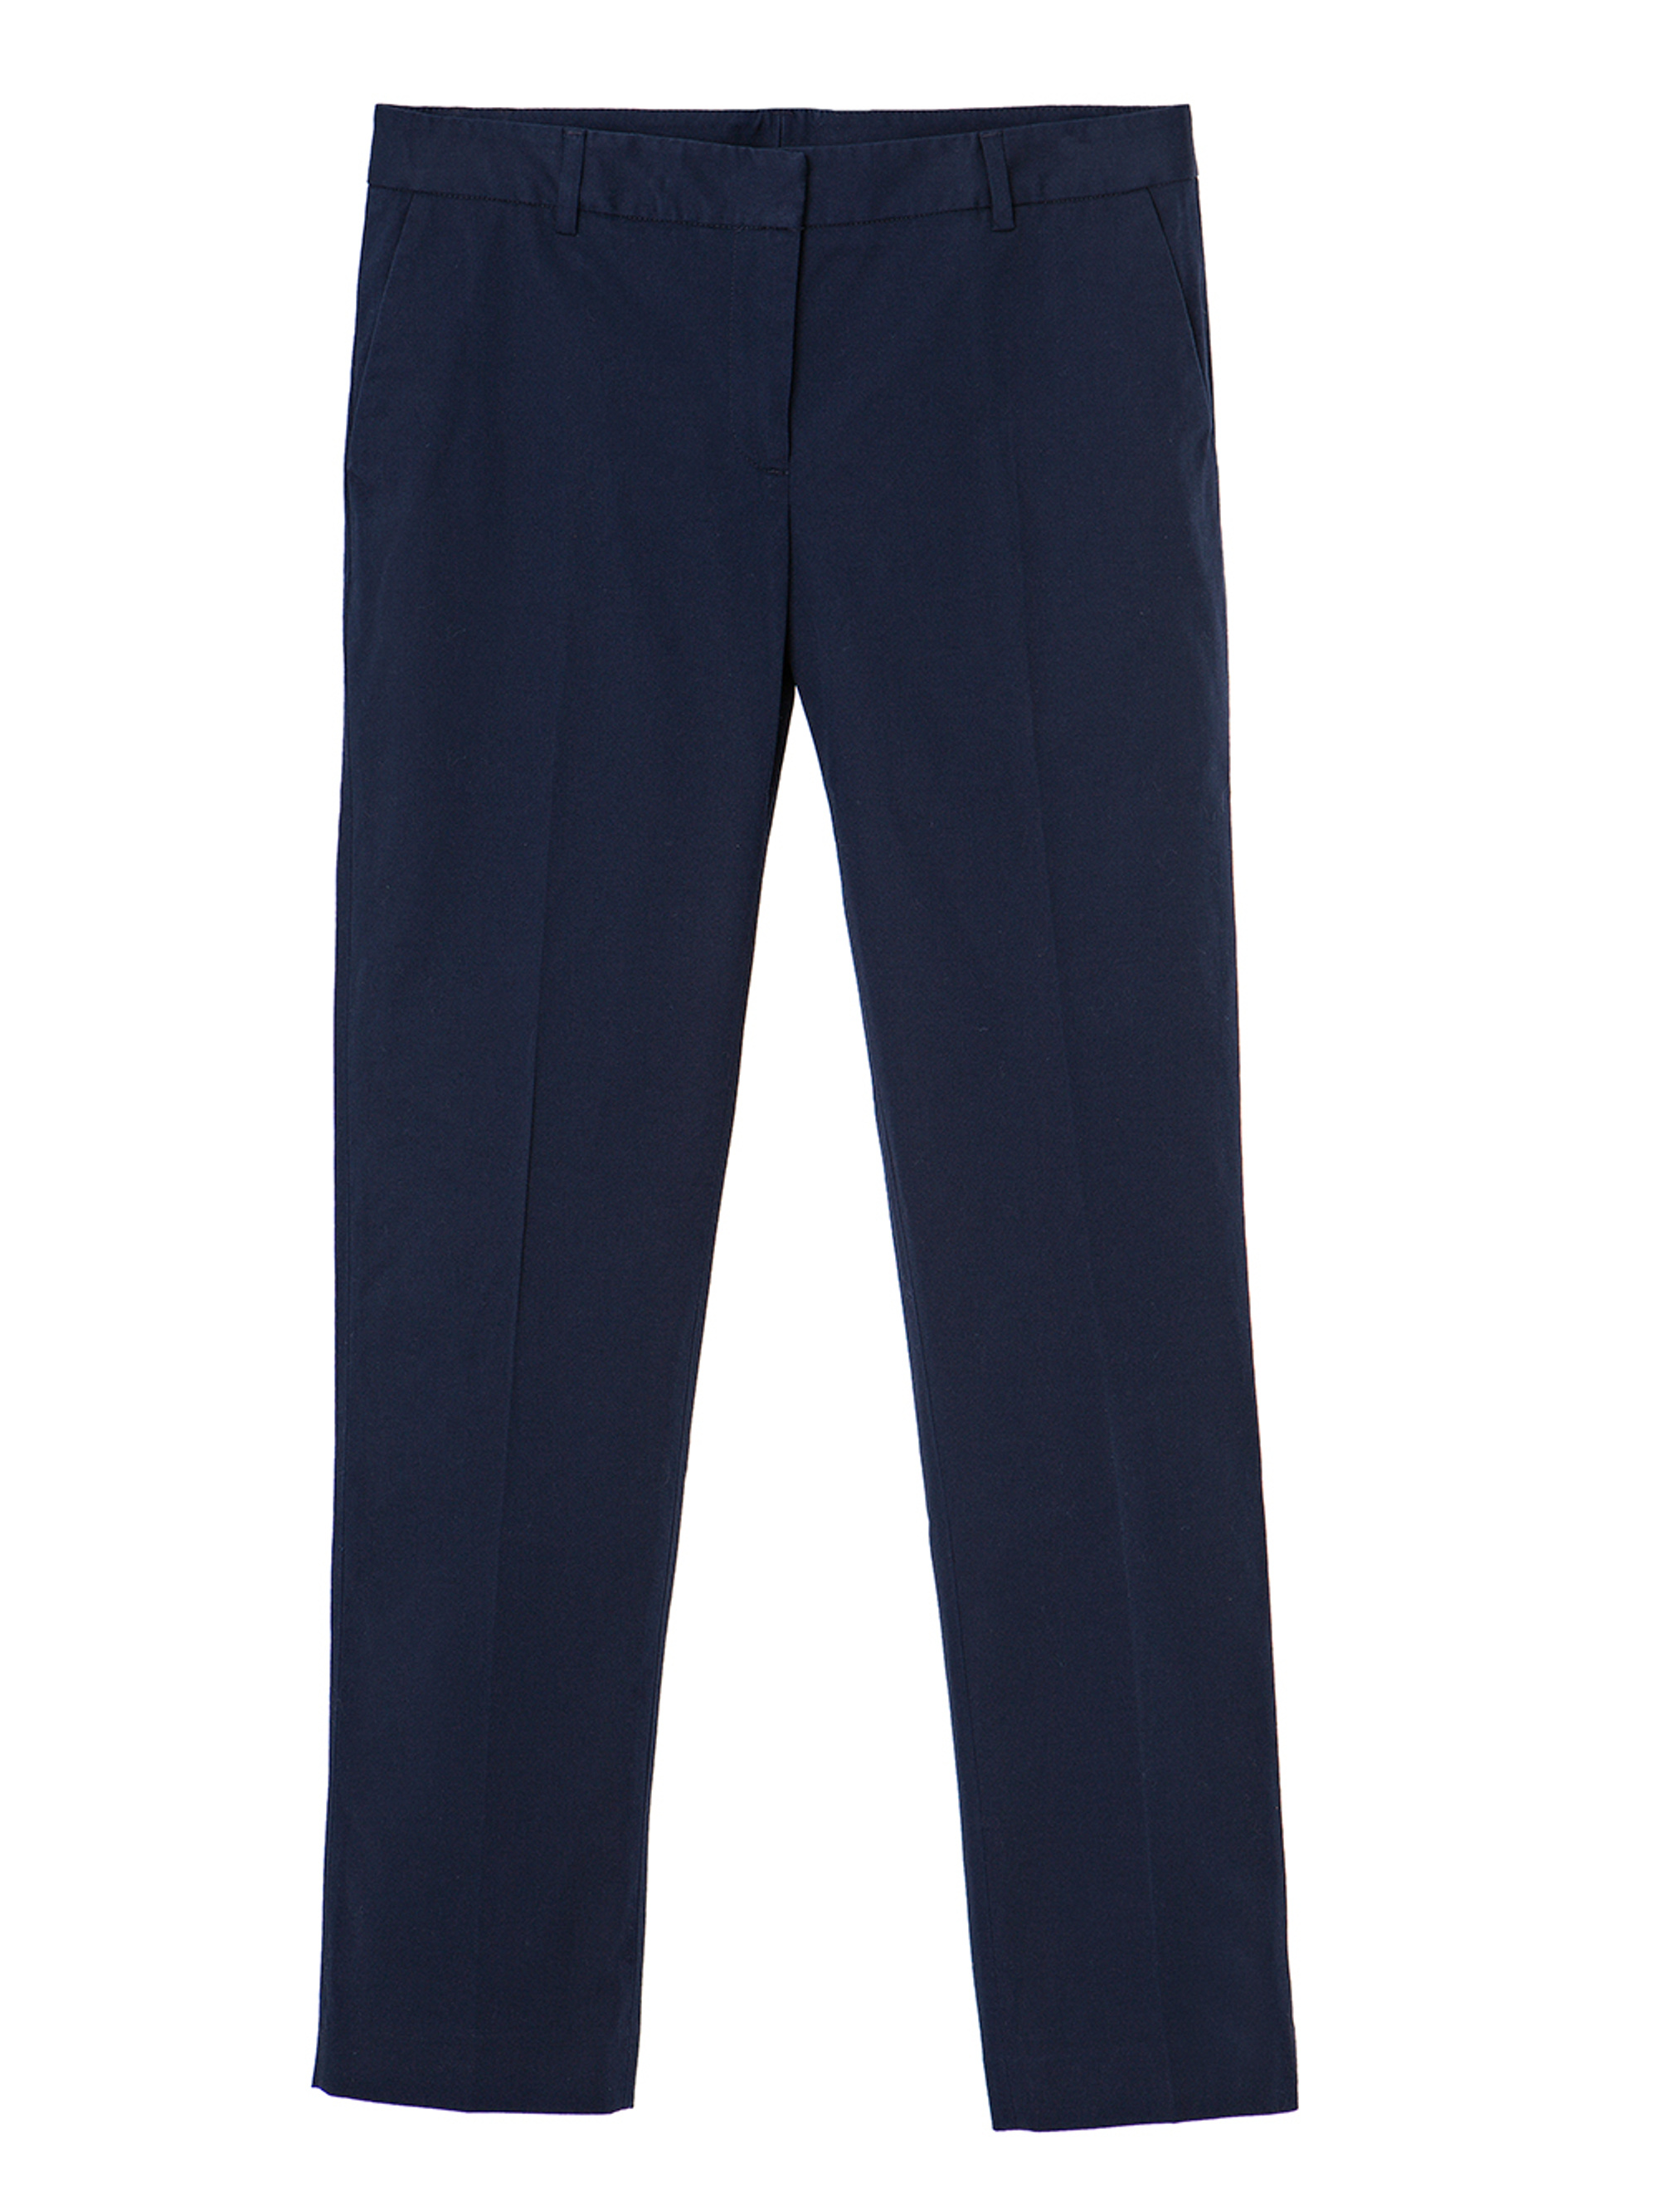 Blake Narrow Leg Pants